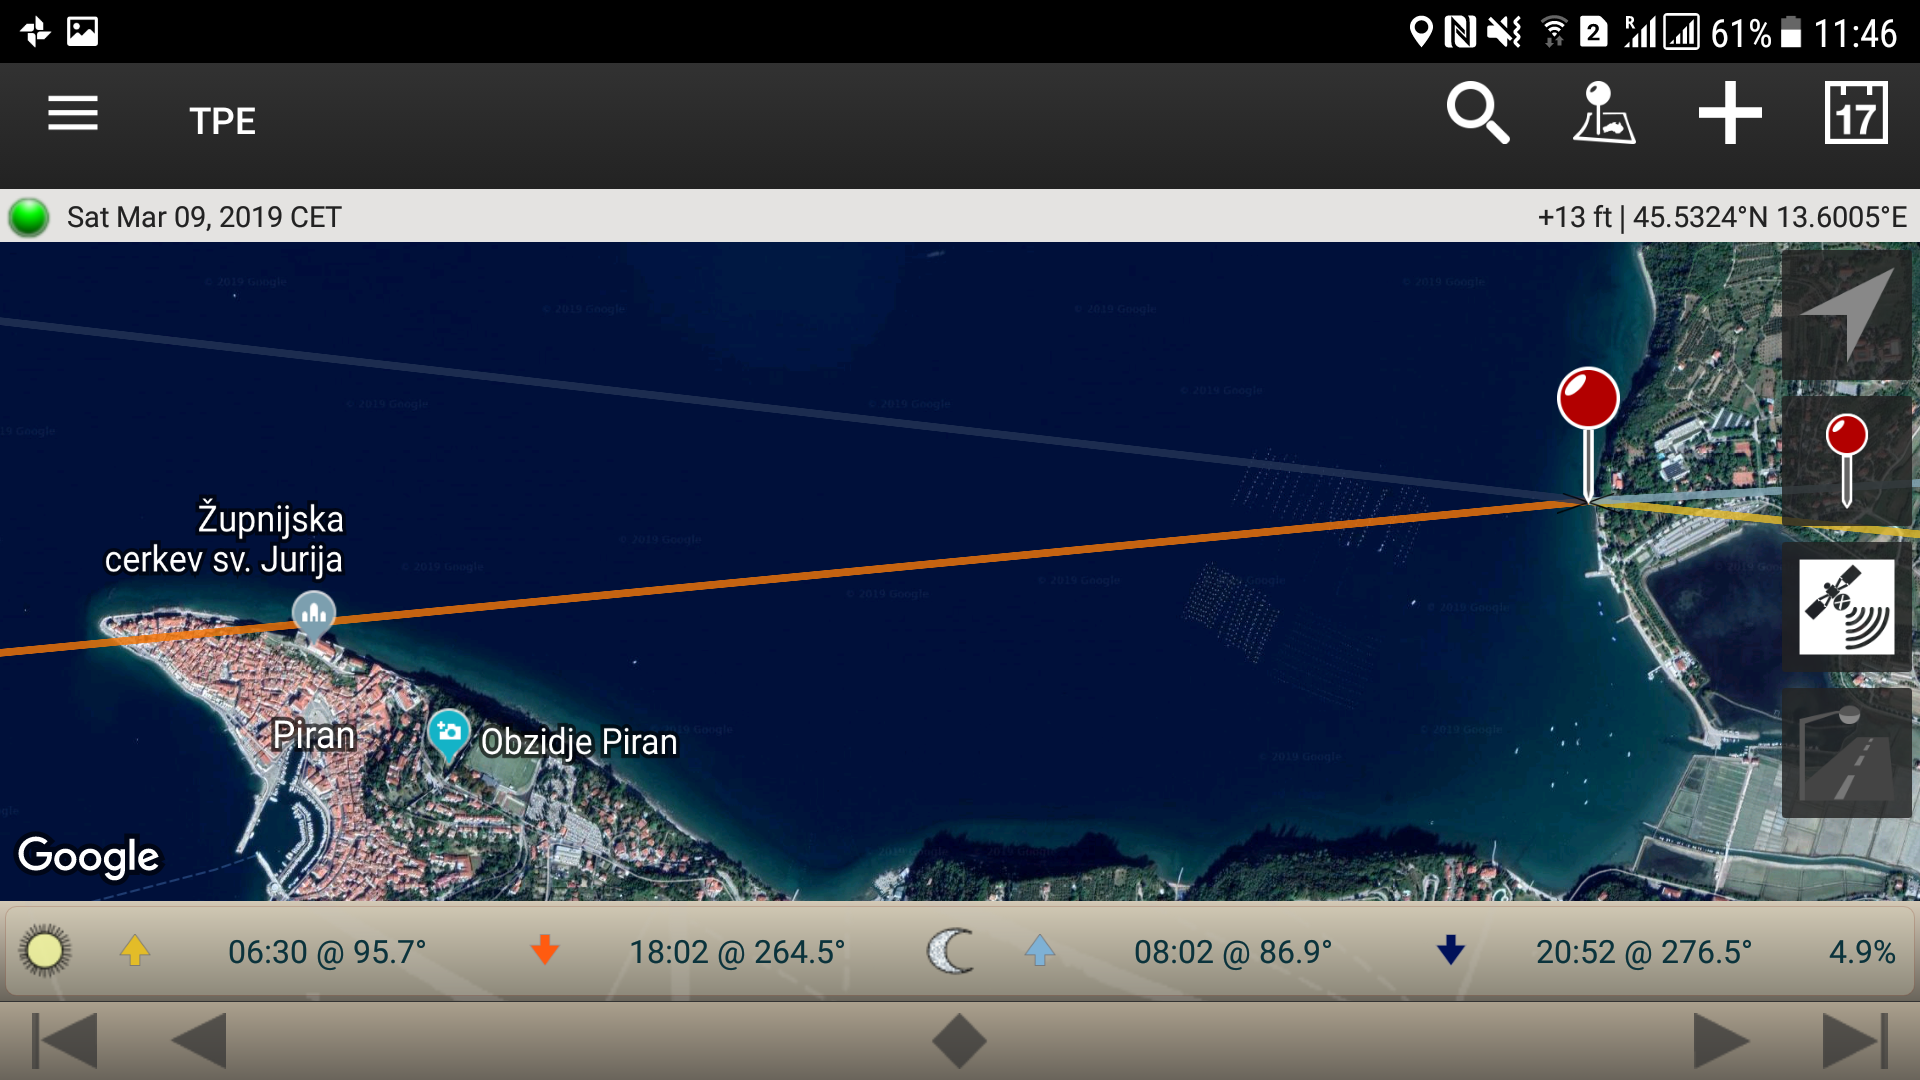 Using the Photographers Ephemeris to Plan a photoshoot of the sun setting over the Church of Saint George in Piran from Strunjan in Slovenia.